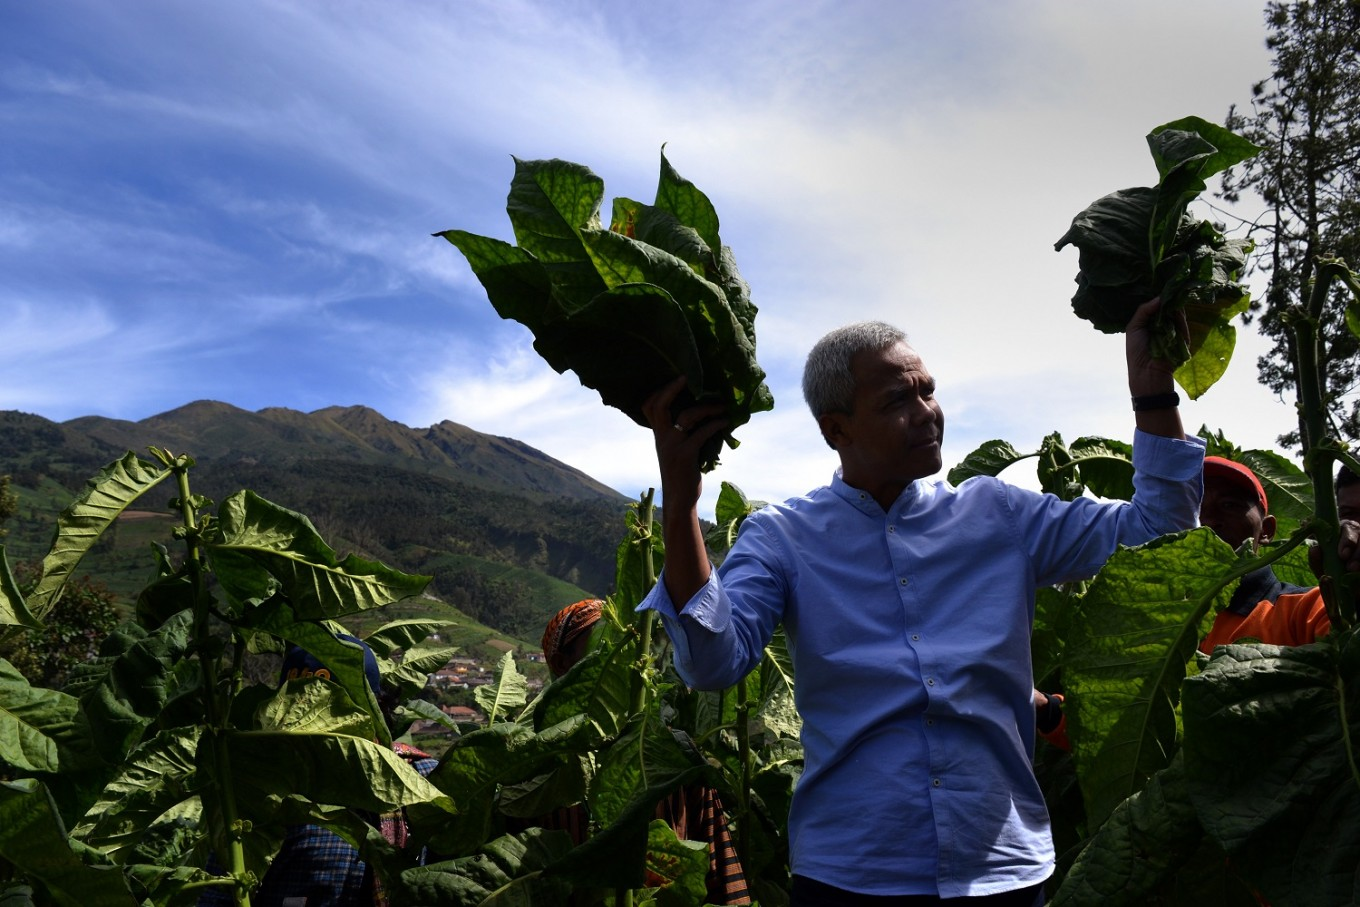 Central Java Governor Ganjar Pranowo marked the beginning of the harvest season with a tobacco picking ritual.